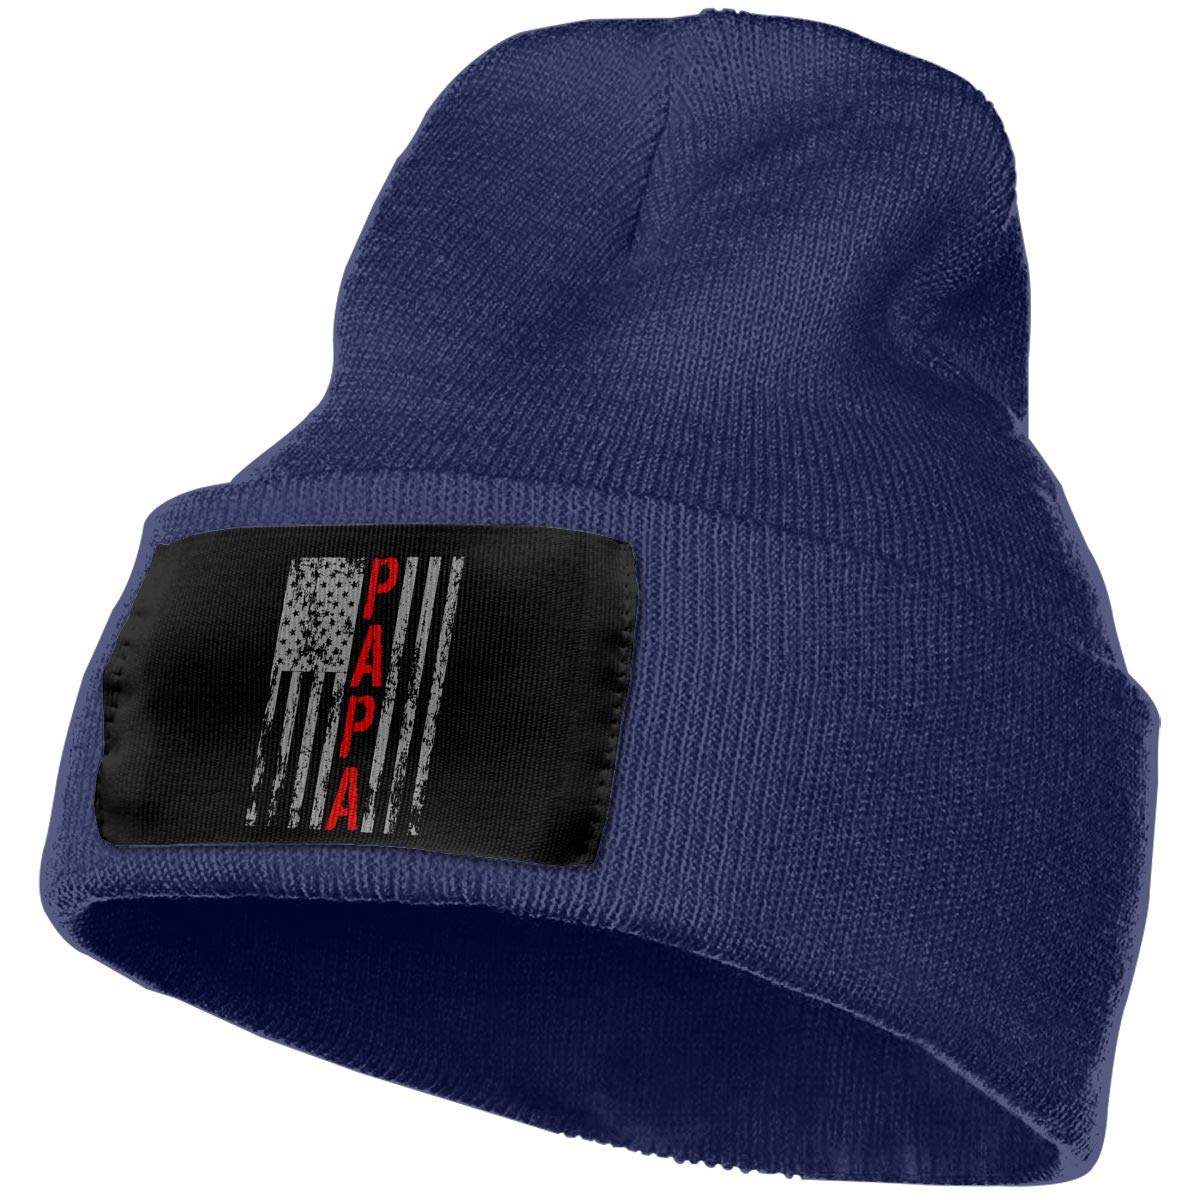 Men /& Women USA PAPA Retro Vintage Flag Outdoor Warm Knit Beanies Hat Soft Winter Skull Caps